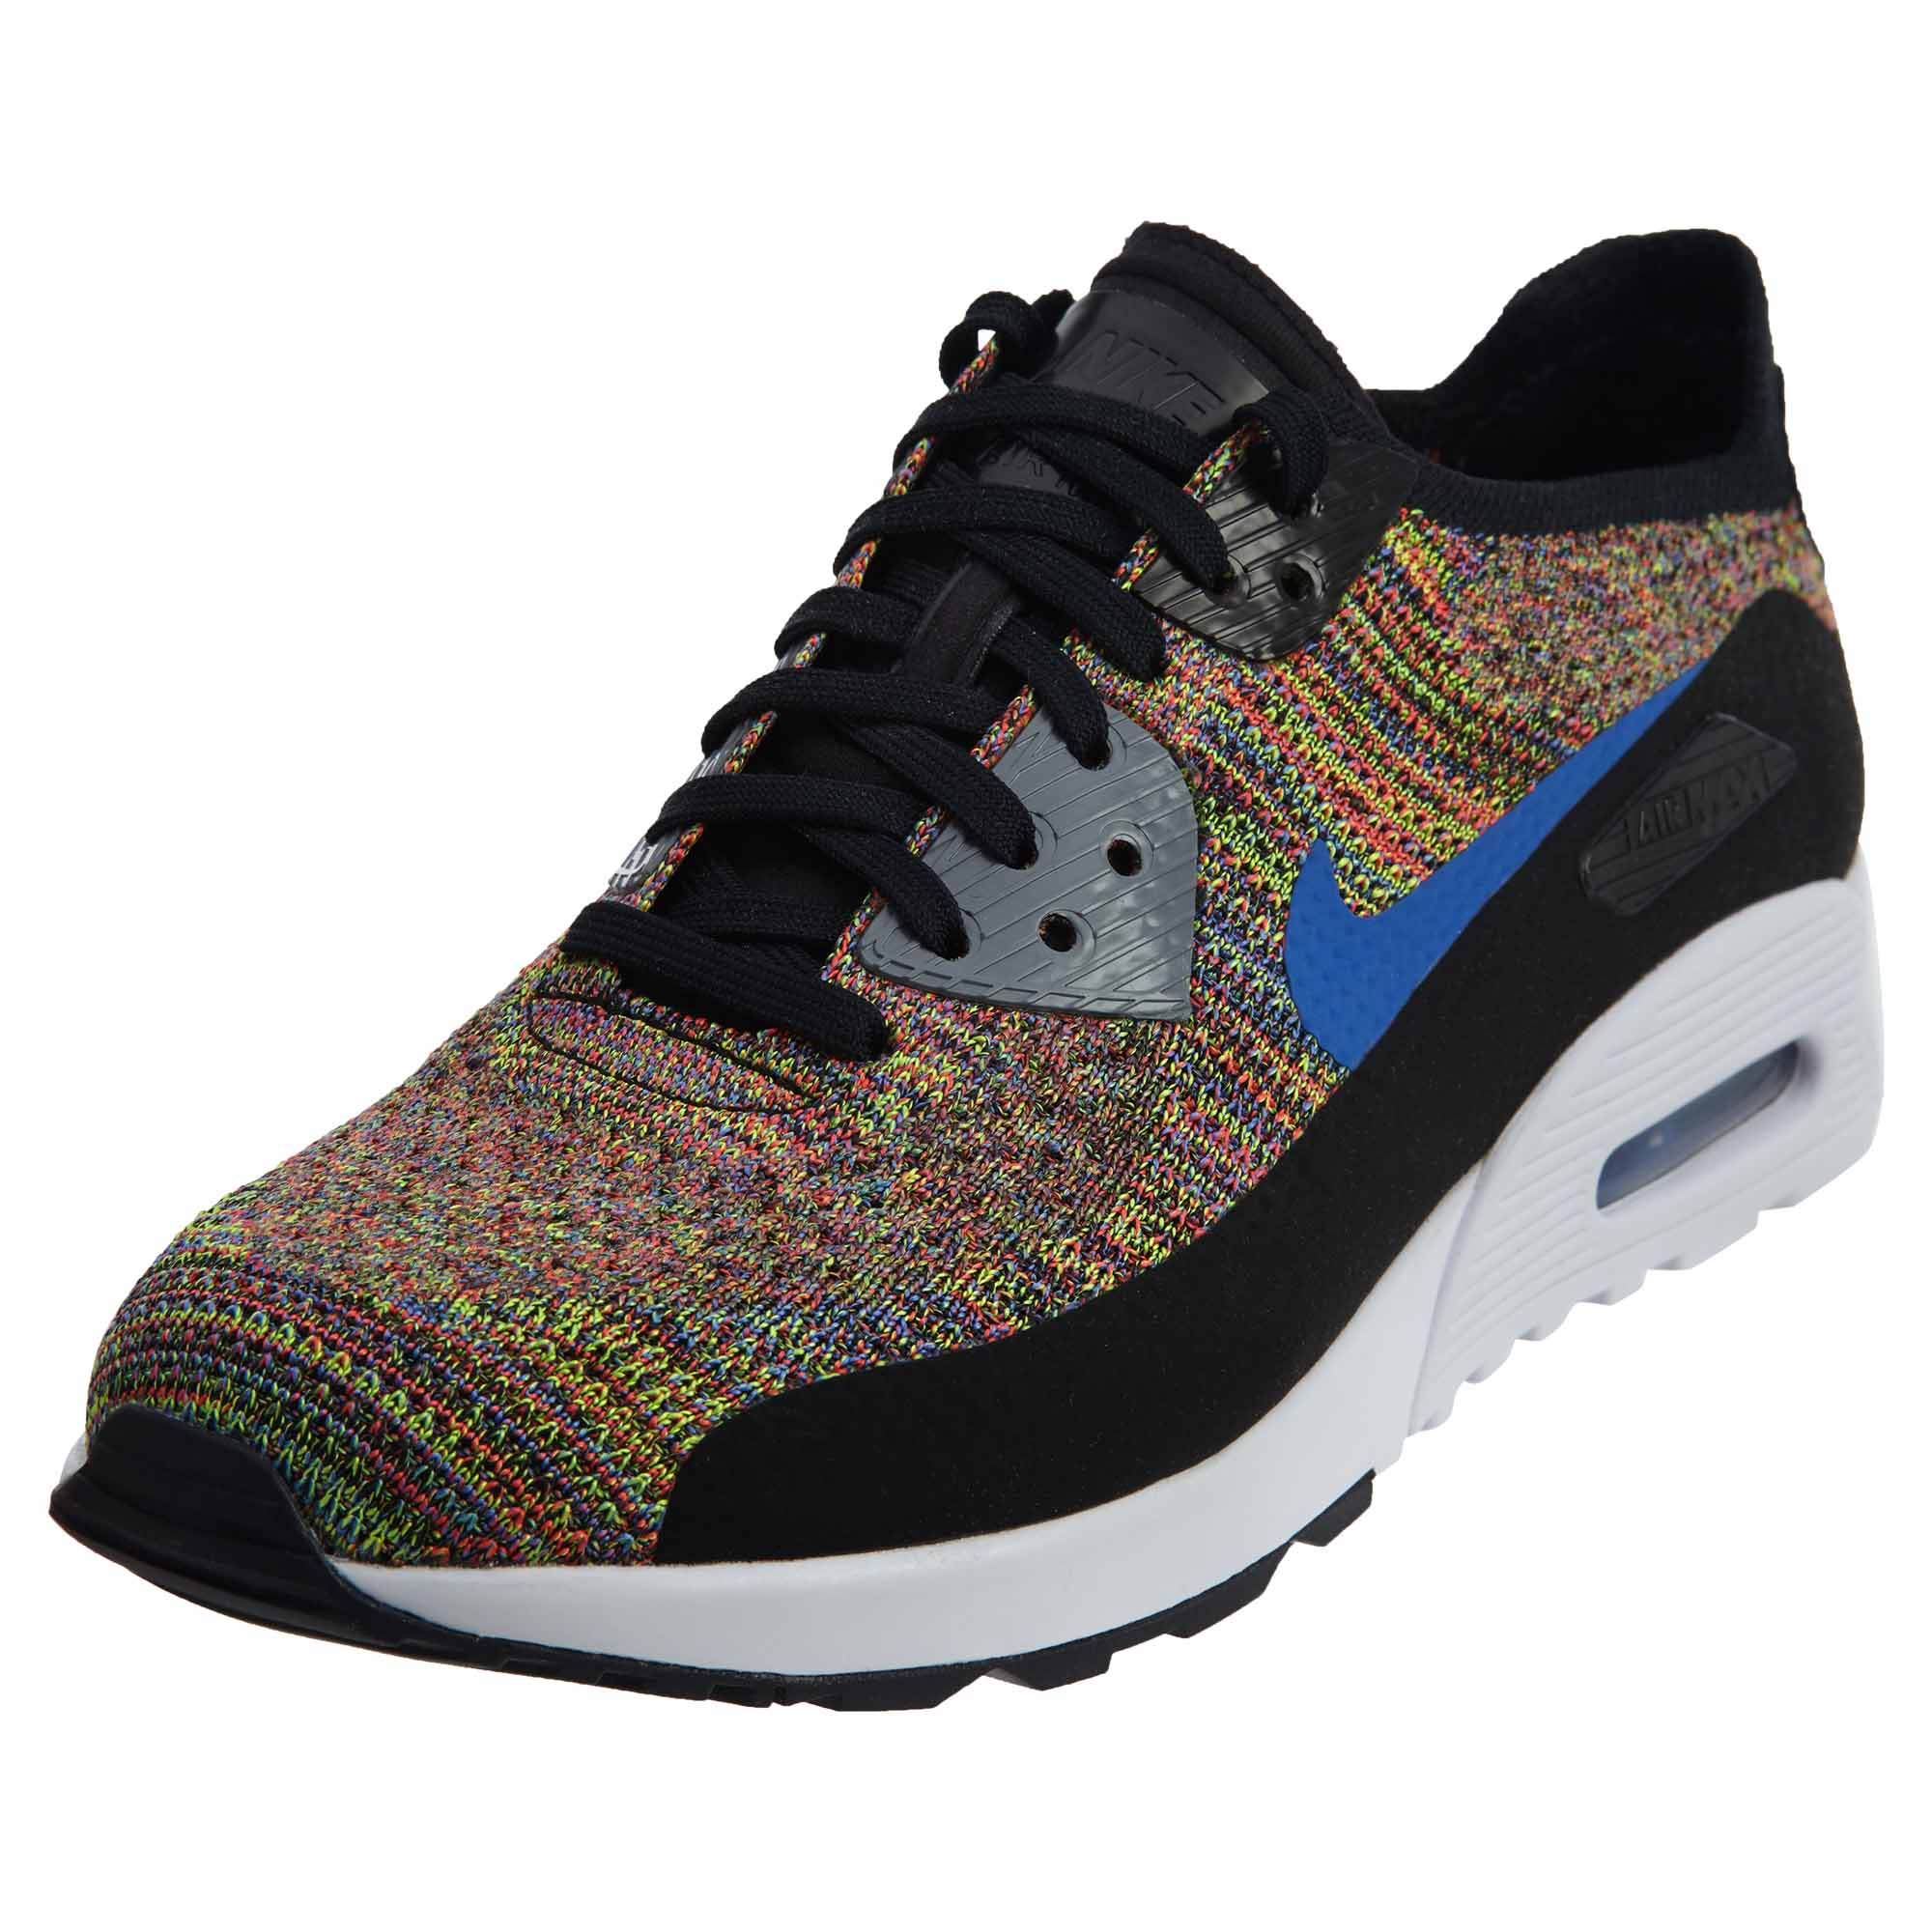 2cbccad694e13 Details about Nike Womens Air Max 90 Ultra 2.0 Flyknit Sneakers 881109-001